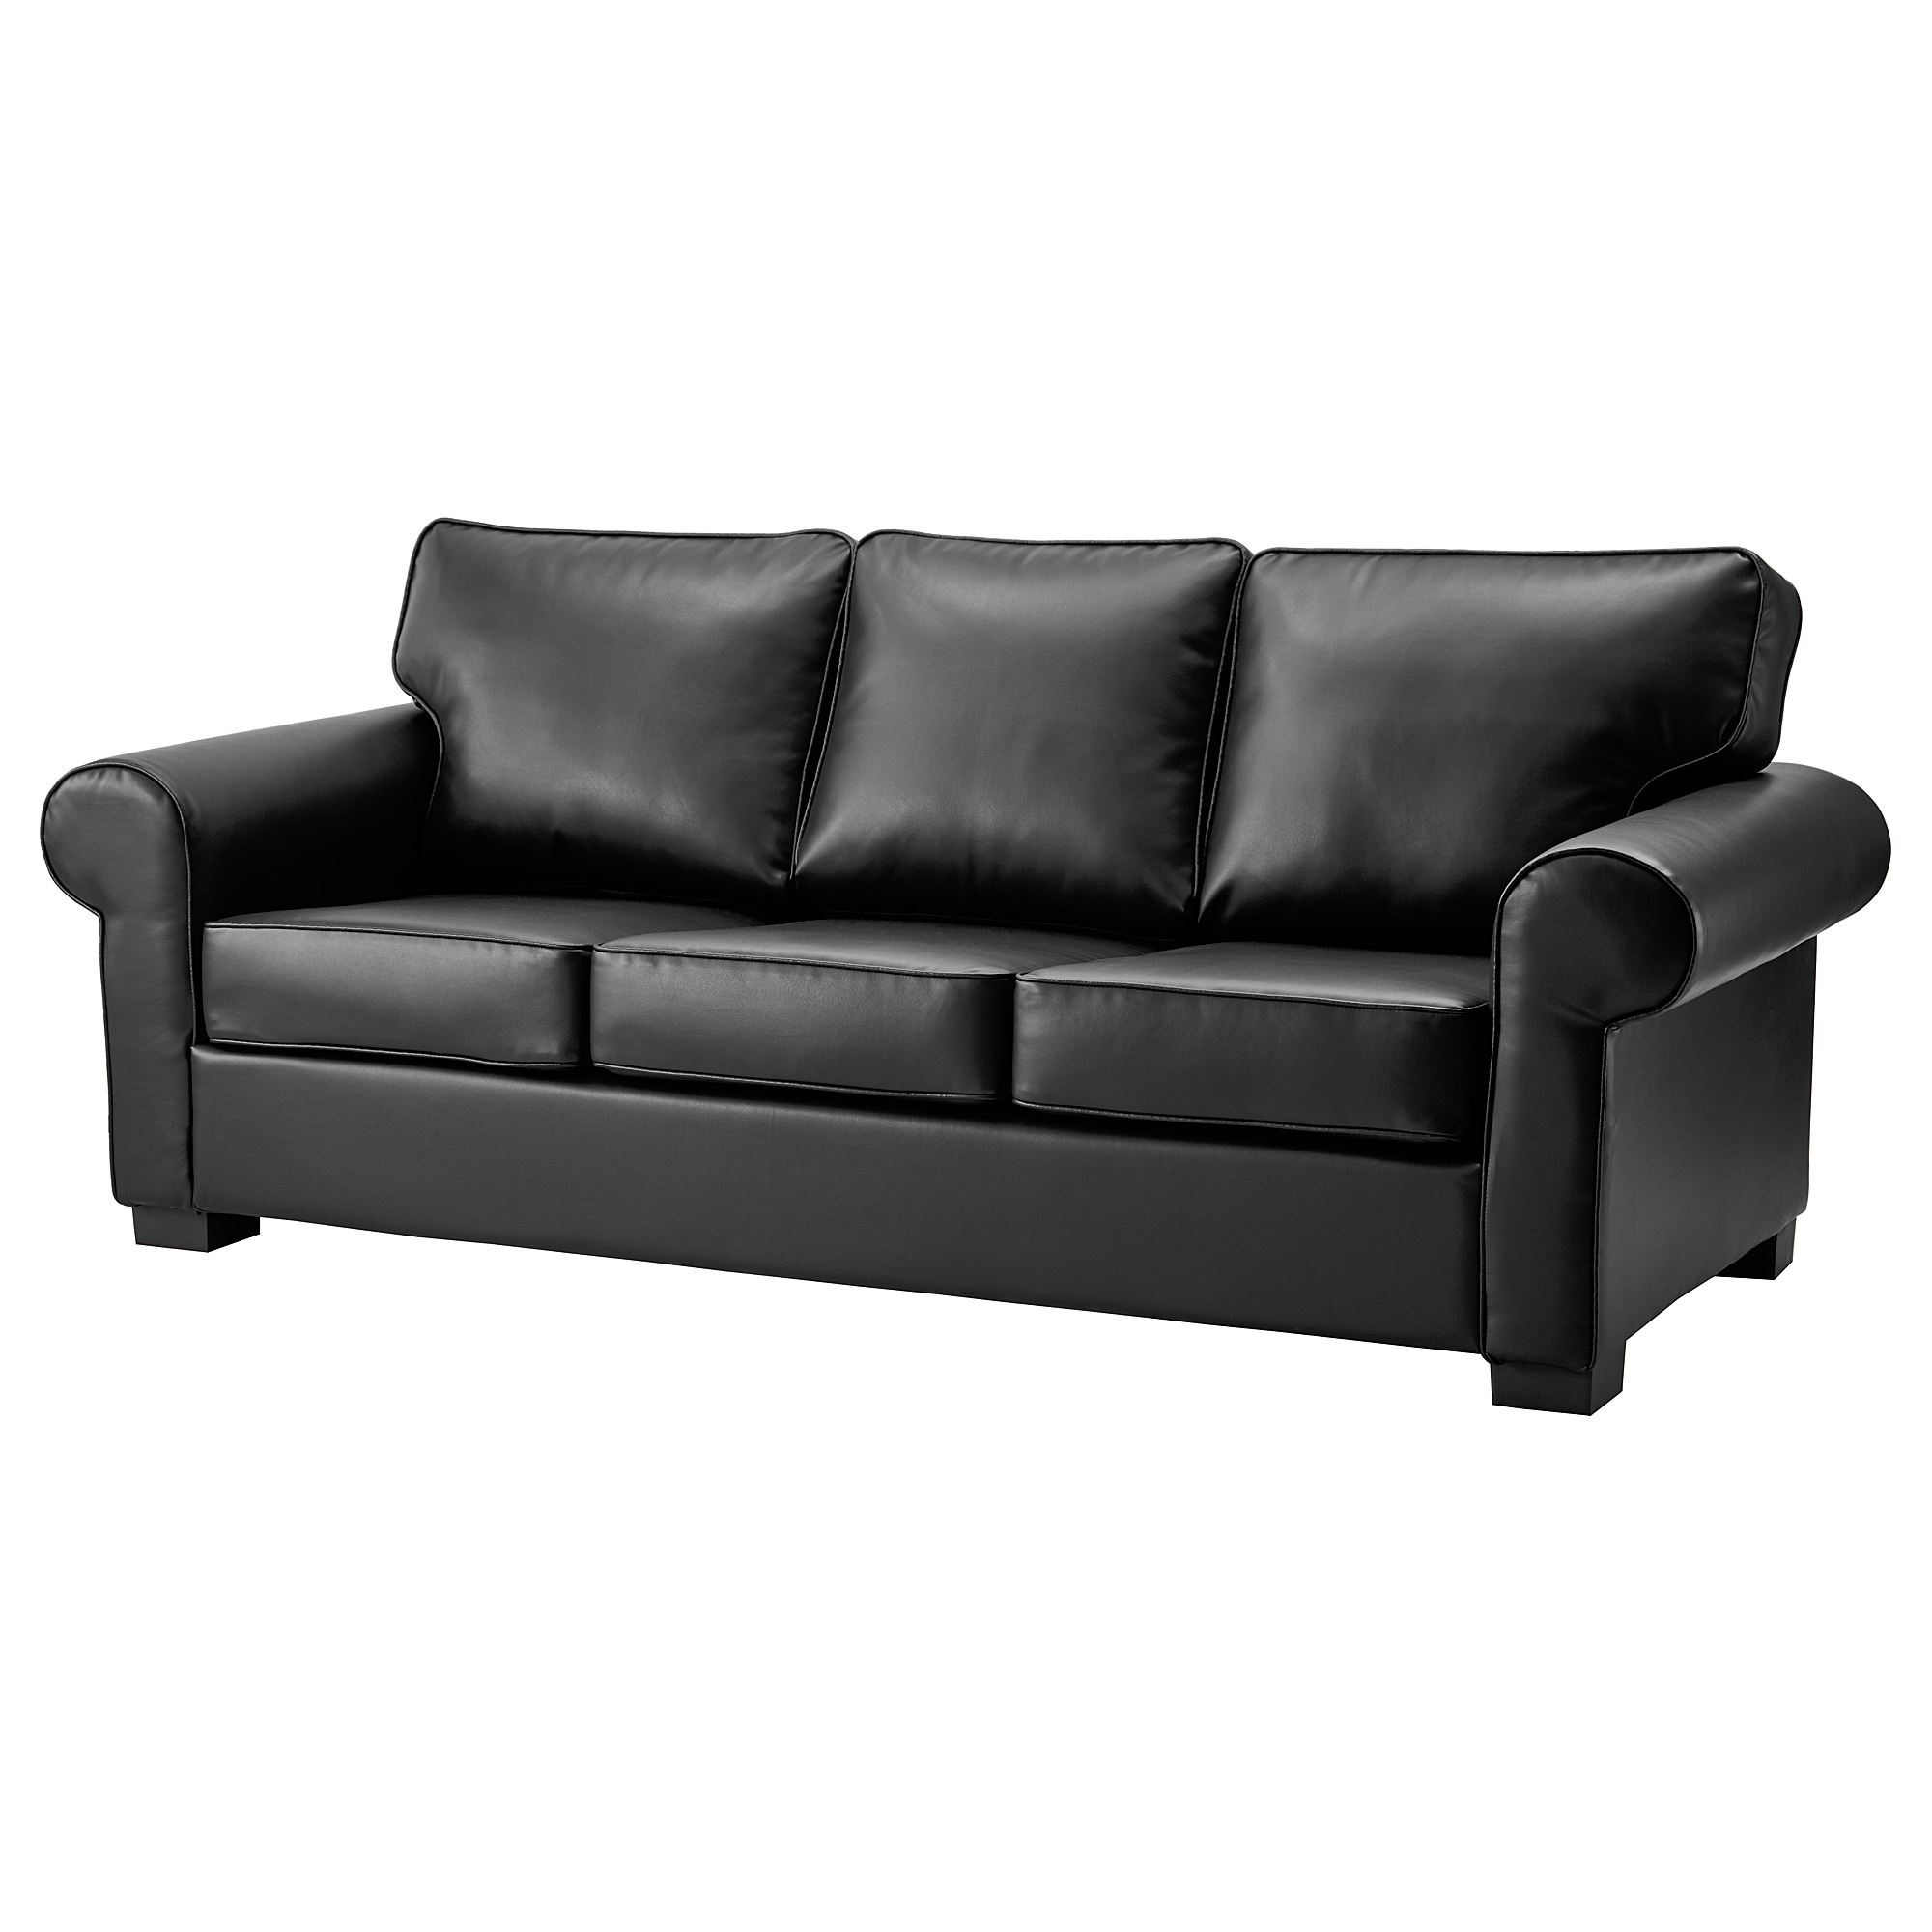 buy leather sofa leather couch leather armchairs online ikea rh ikea com  ikea red leather sofa bed